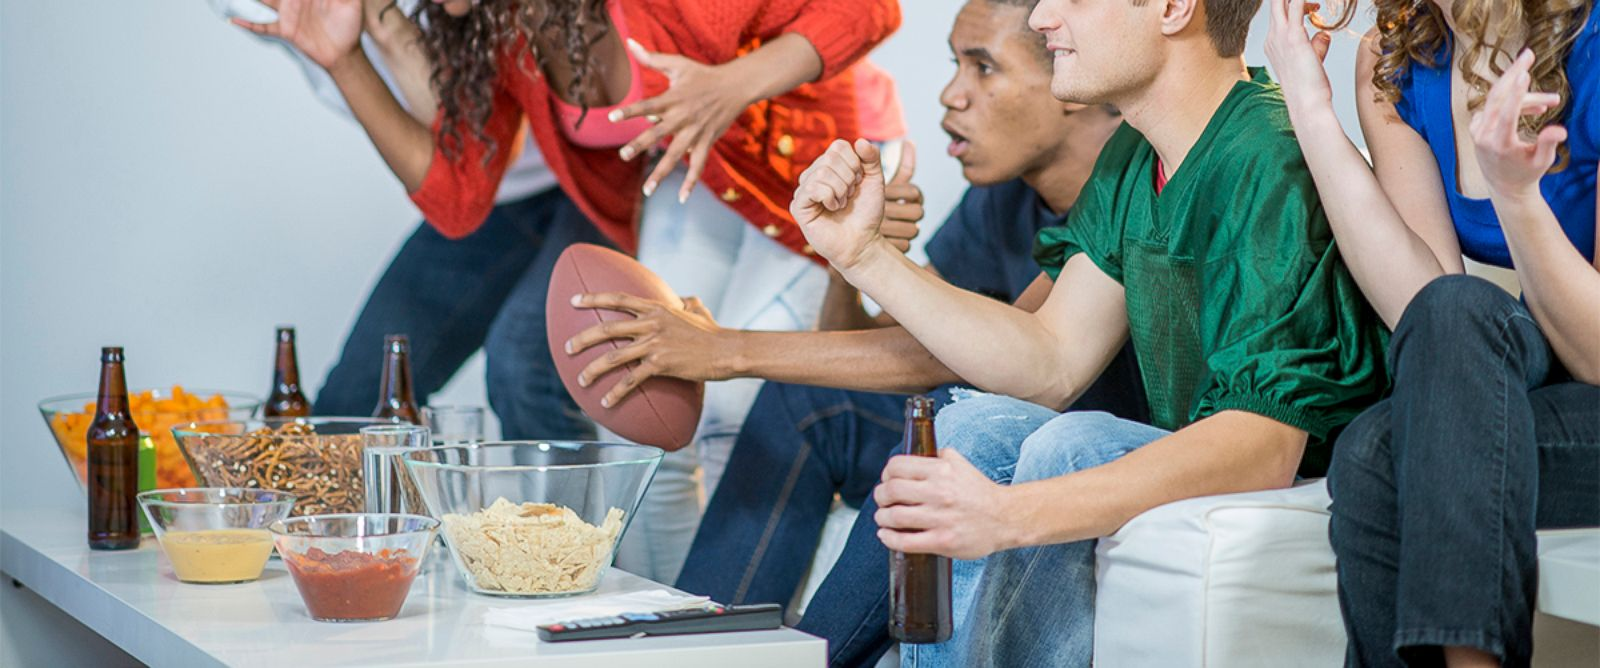 PHOTO: People cheer while watching a football game on television in an undated stock photo.